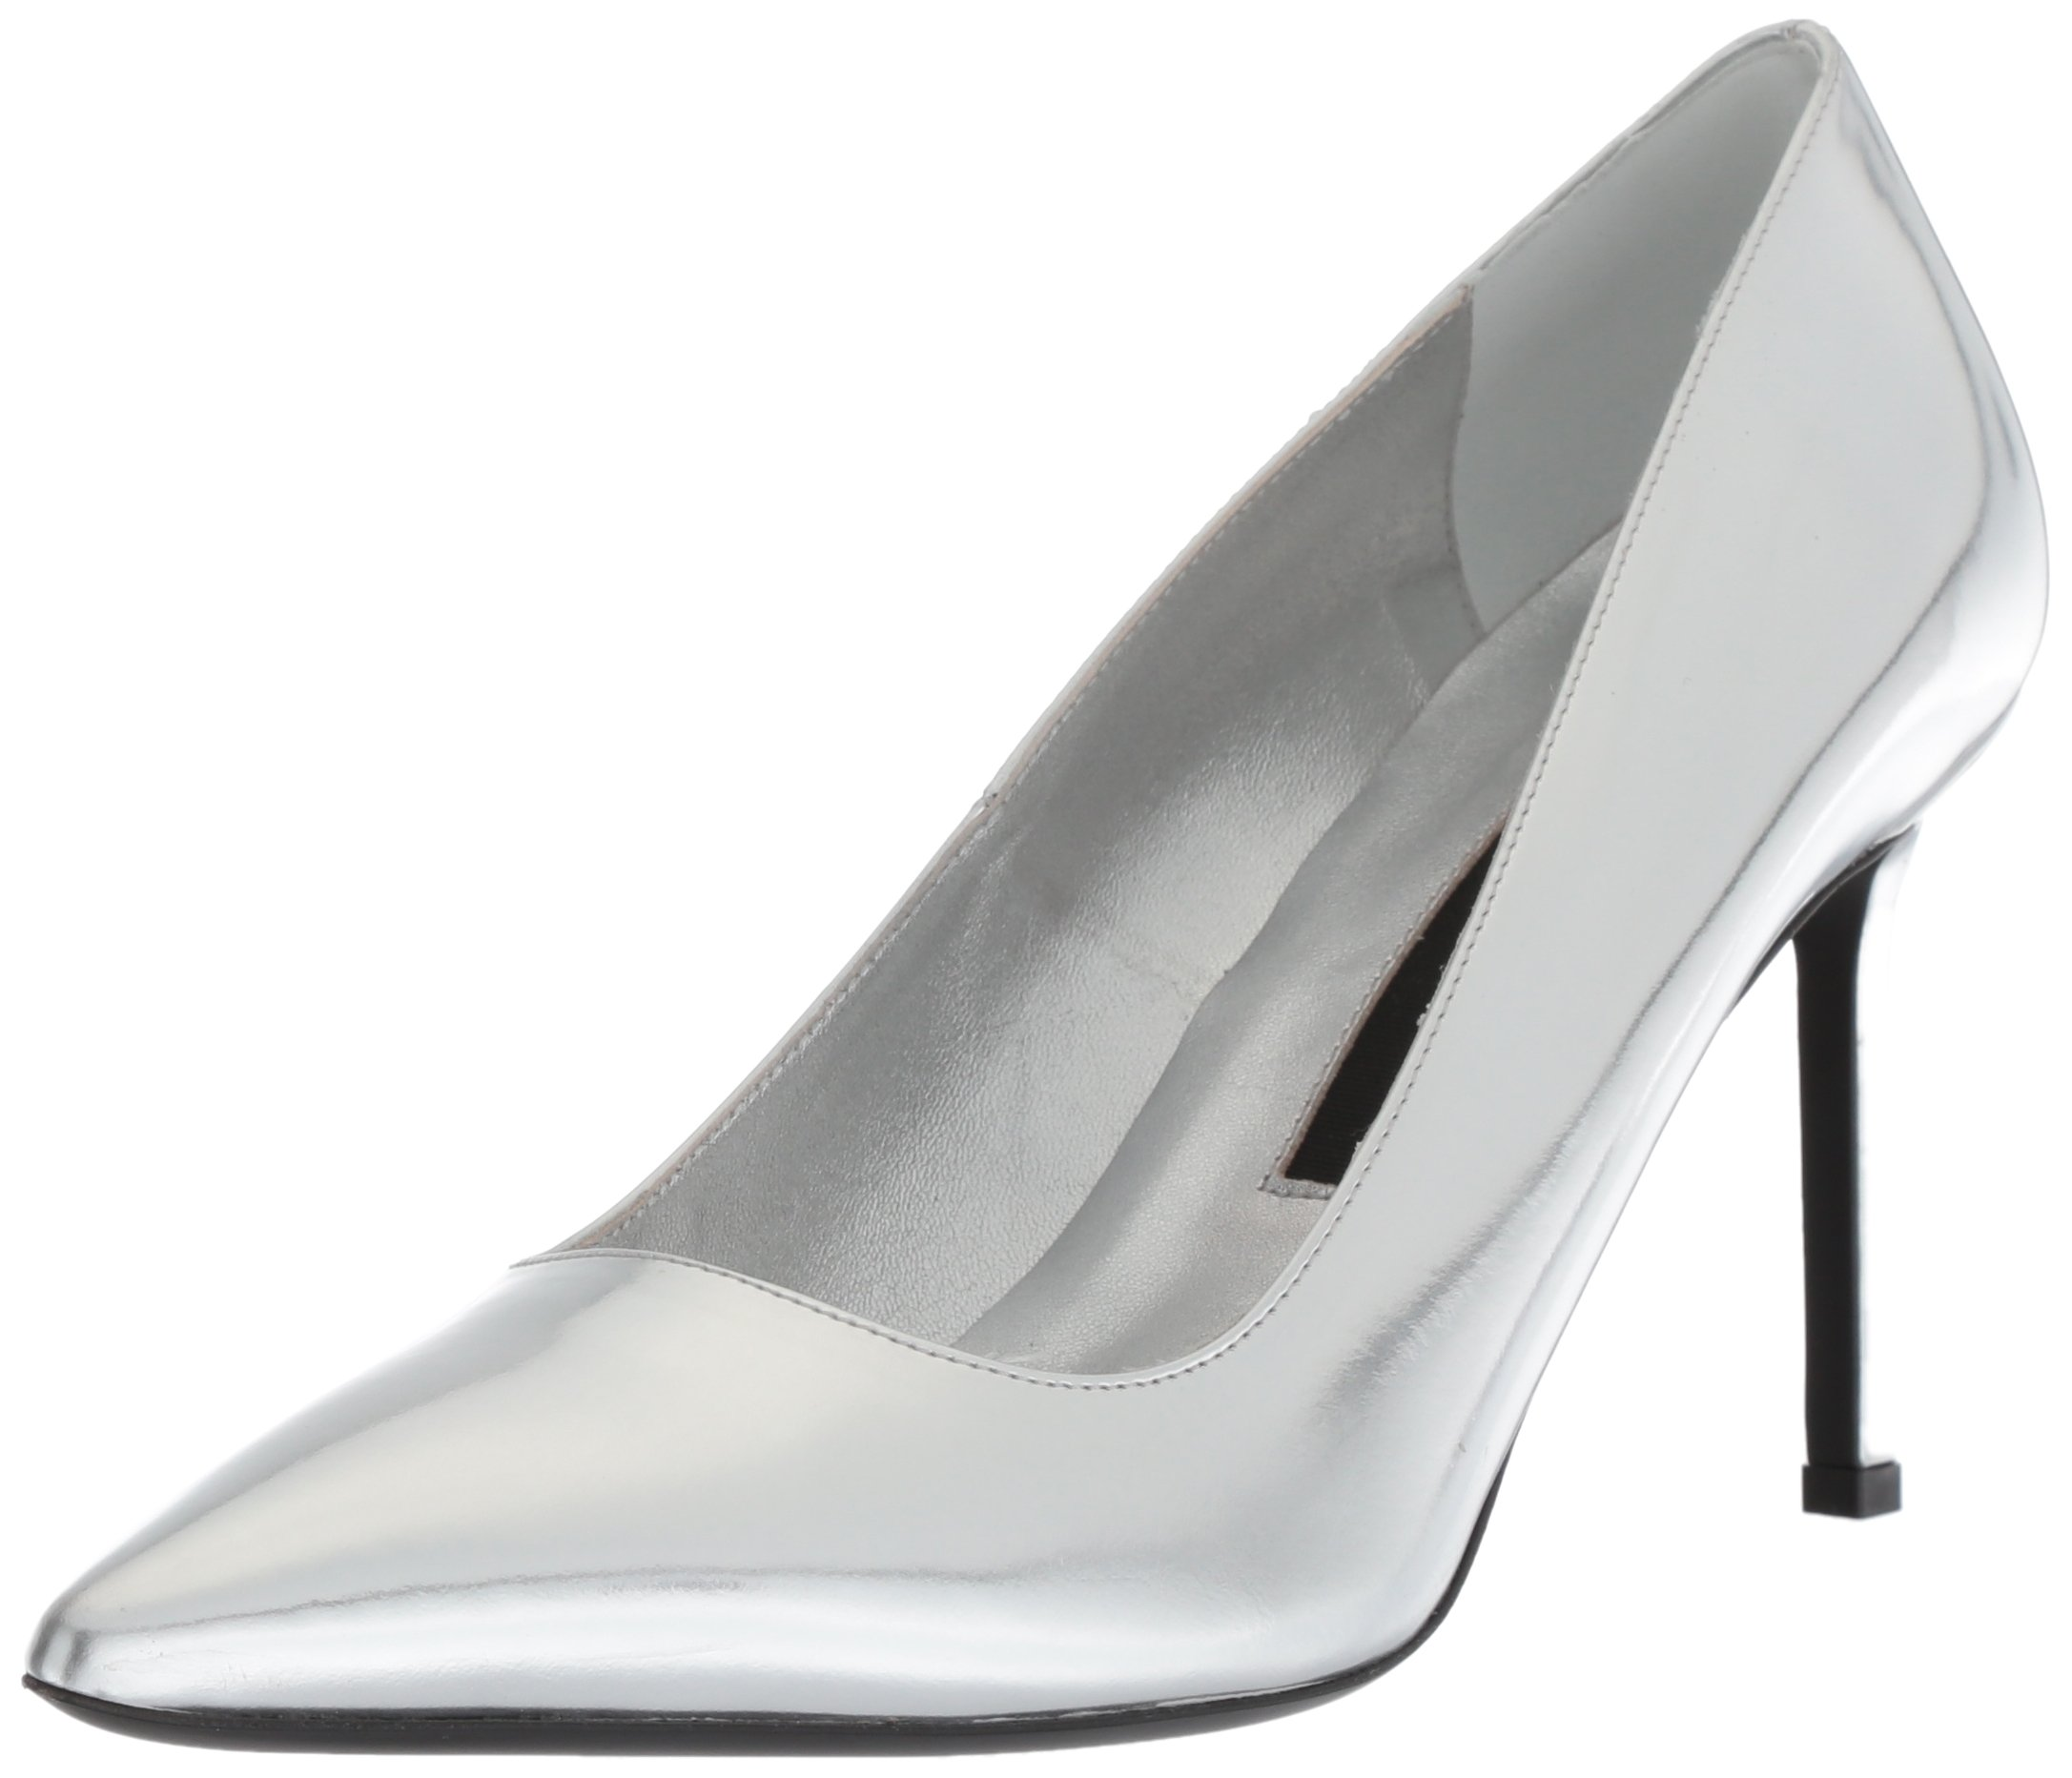 Via Spiga Women's Nikole Pump, Silver/Metallic, 5.5 Medium US